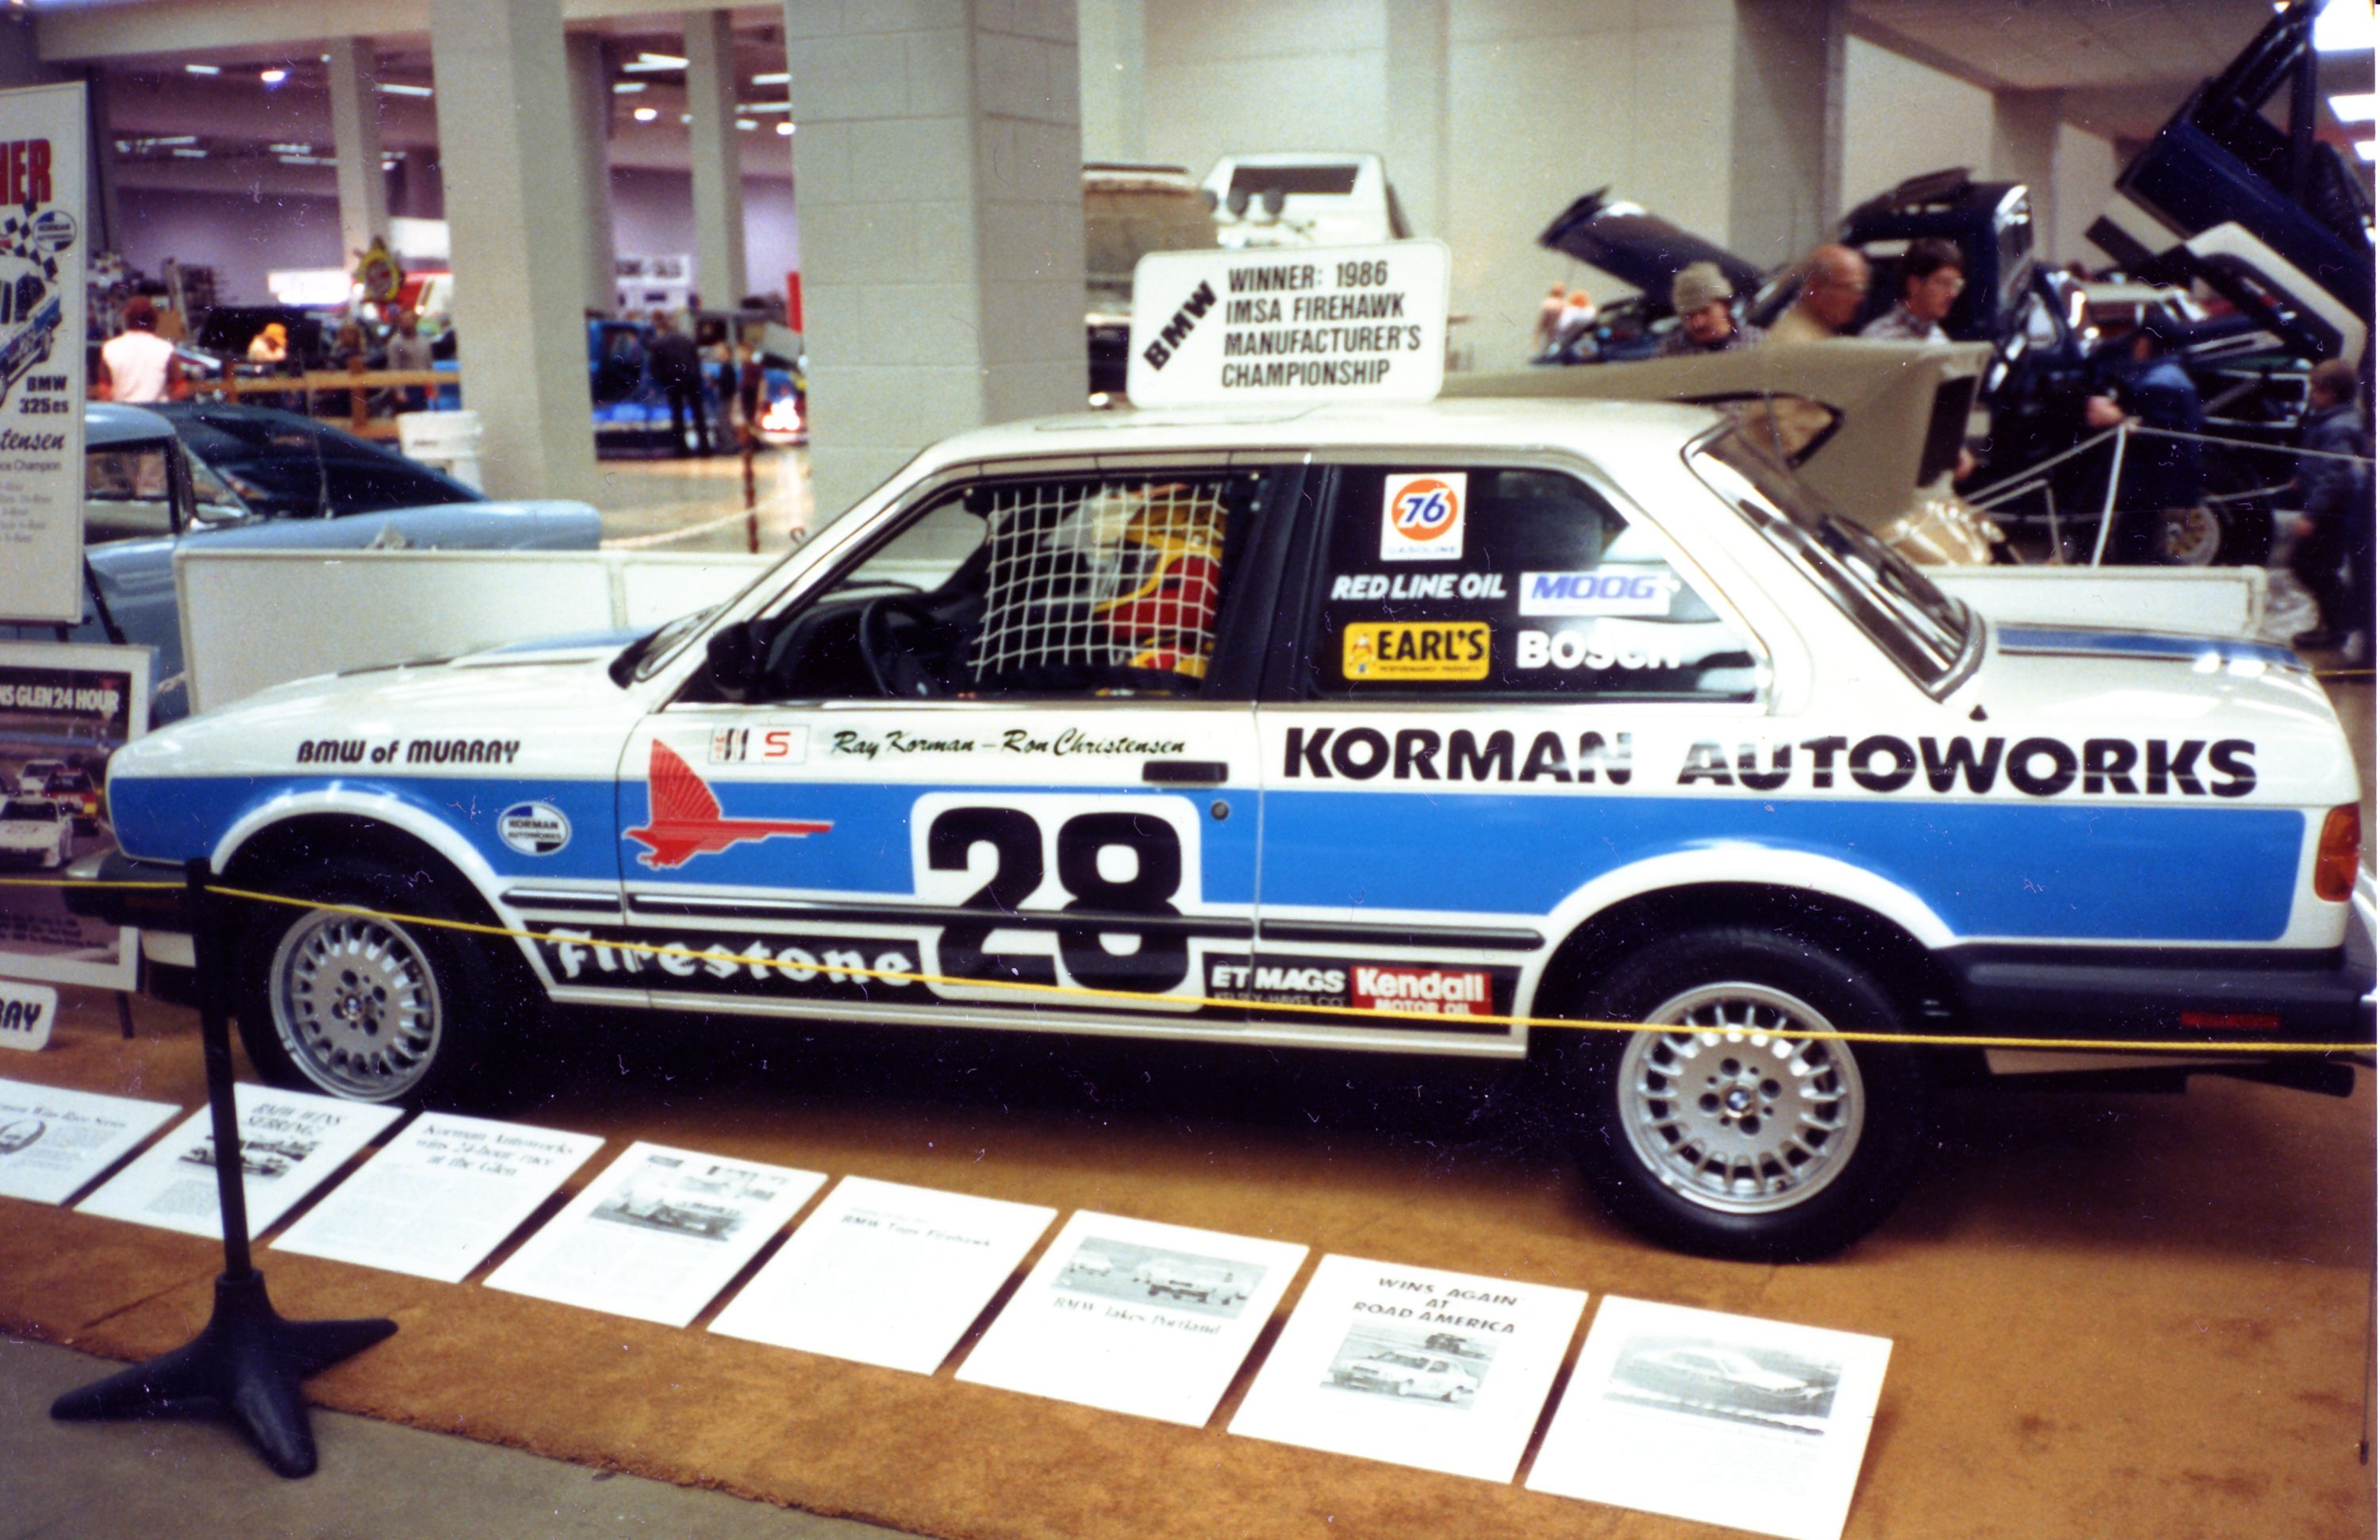 1986 bmw 325e this was a clone of the korman race car that i made [ 3000 x 1941 Pixel ]